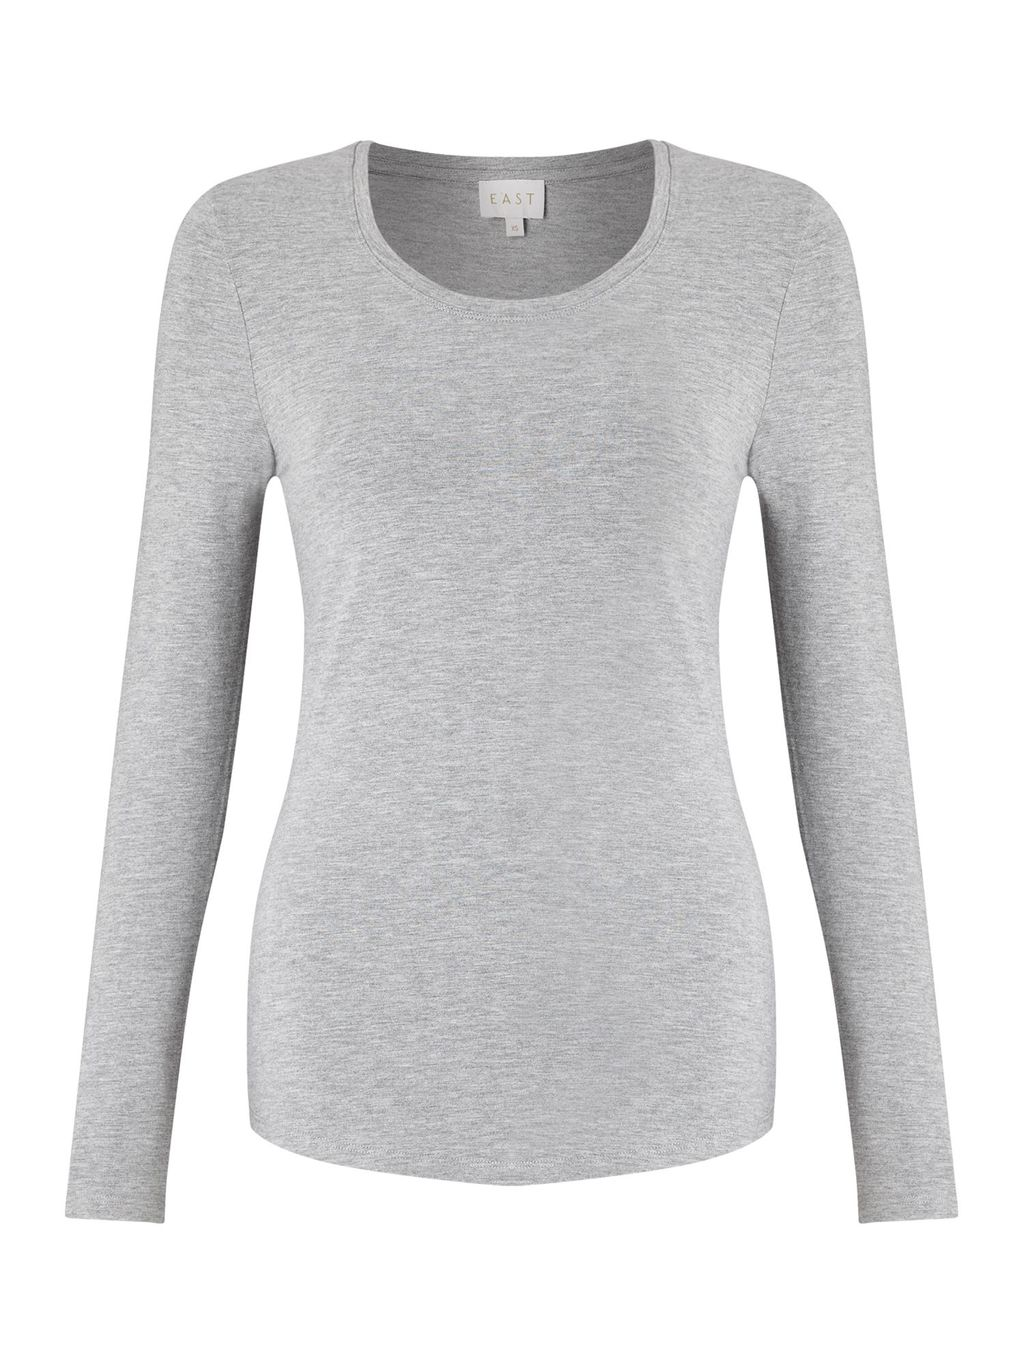 Long Sleeve Jersey Top, Grey - pattern: plain; predominant colour: light grey; occasions: casual; length: standard; style: top; fibres: viscose/rayon - stretch; fit: body skimming; neckline: crew; sleeve length: long sleeve; sleeve style: standard; pattern type: fabric; texture group: jersey - stretchy/drapey; season: a/w 2016